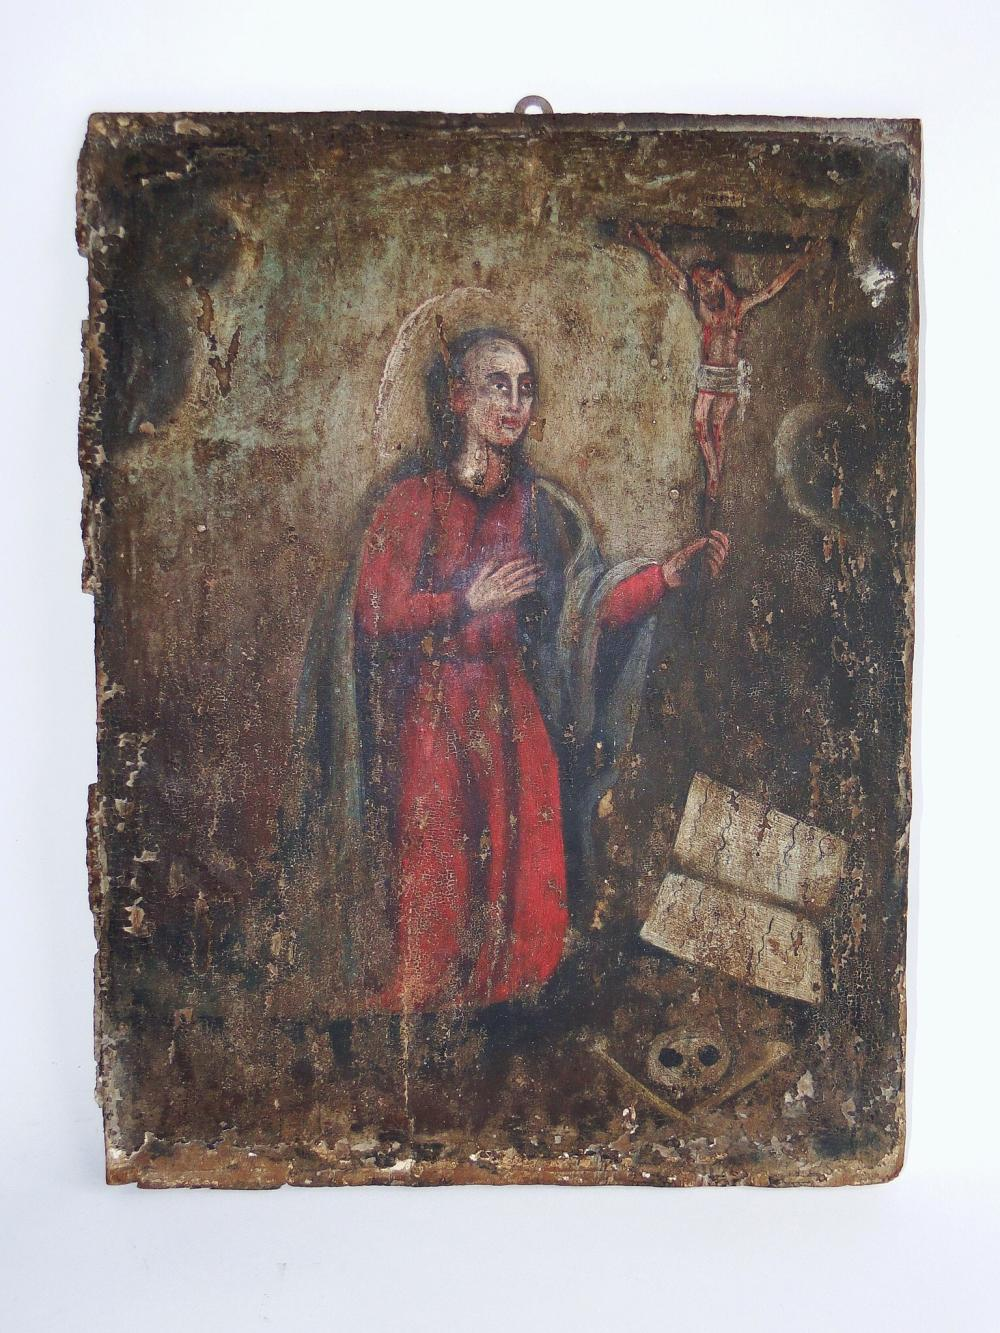 EARLY 17TH C RELIGIOUS PAINTING ON CARVED WOOD PANEL